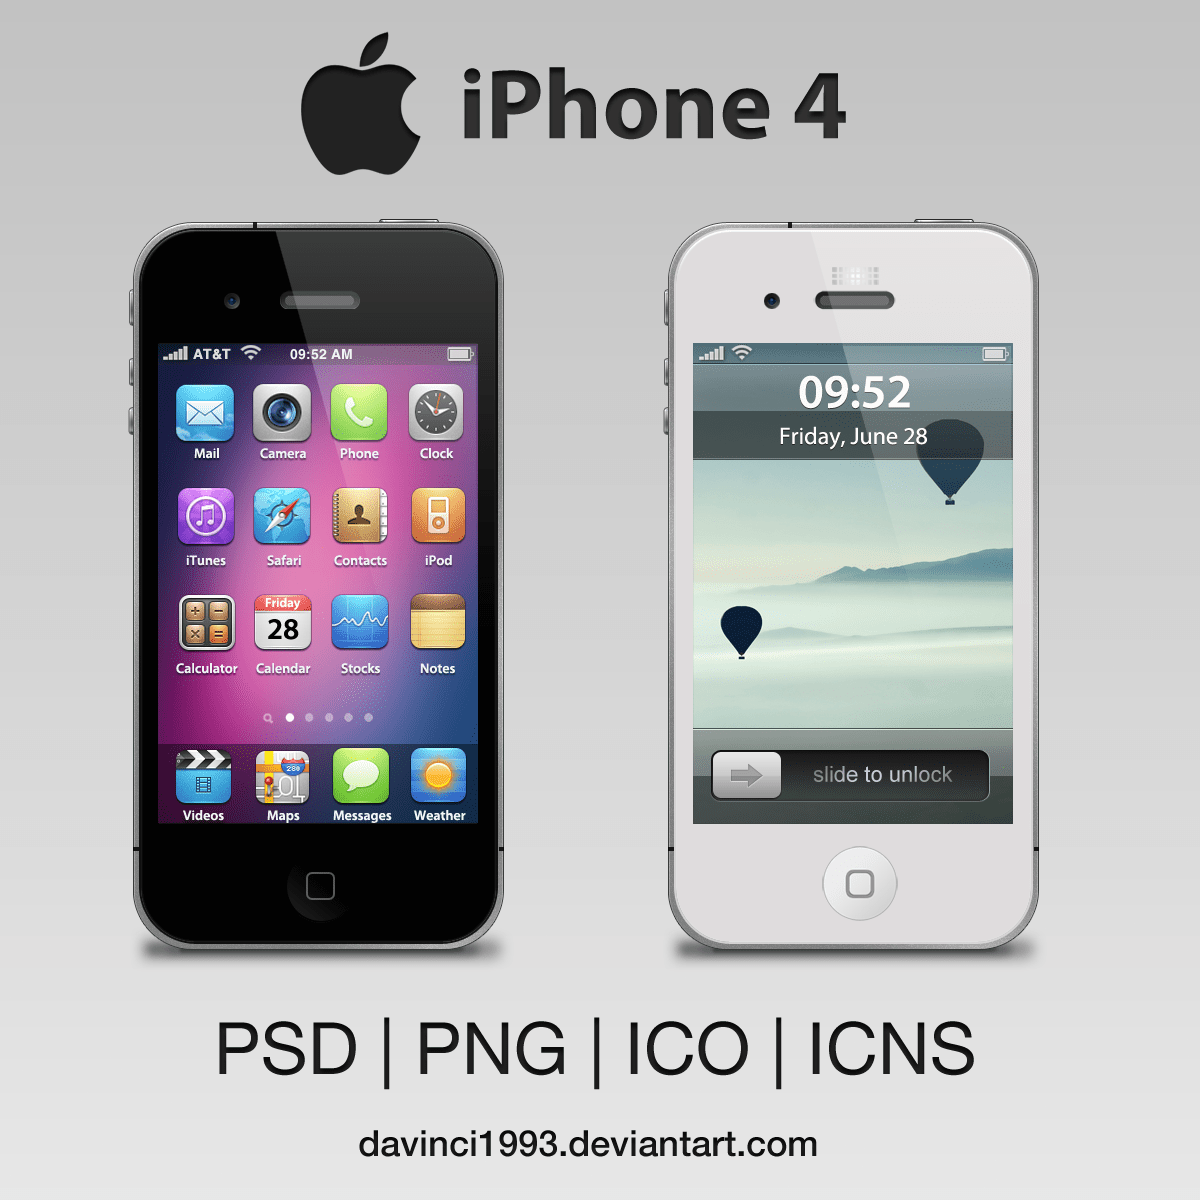 Iphone C Wallpaper Apple Iphone 4 Psd Png Ico Icns By Davinci1993 On